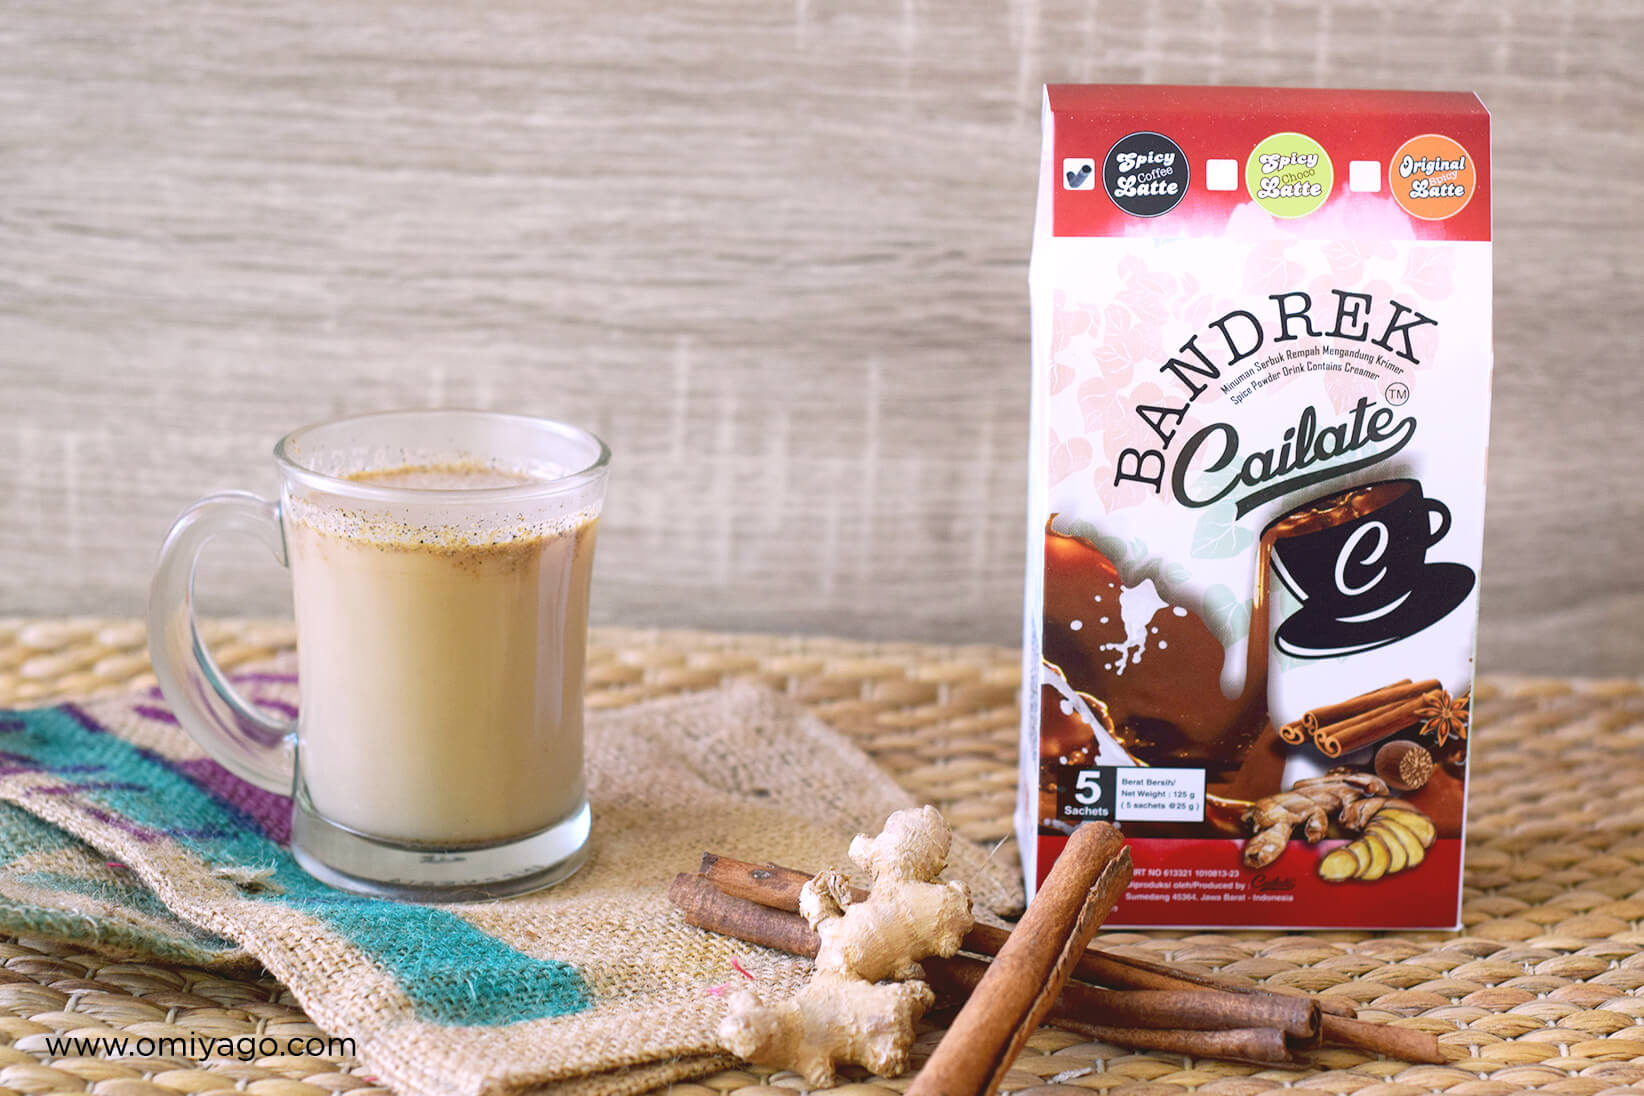 bandrek-cailate-coffee-spicy-latte